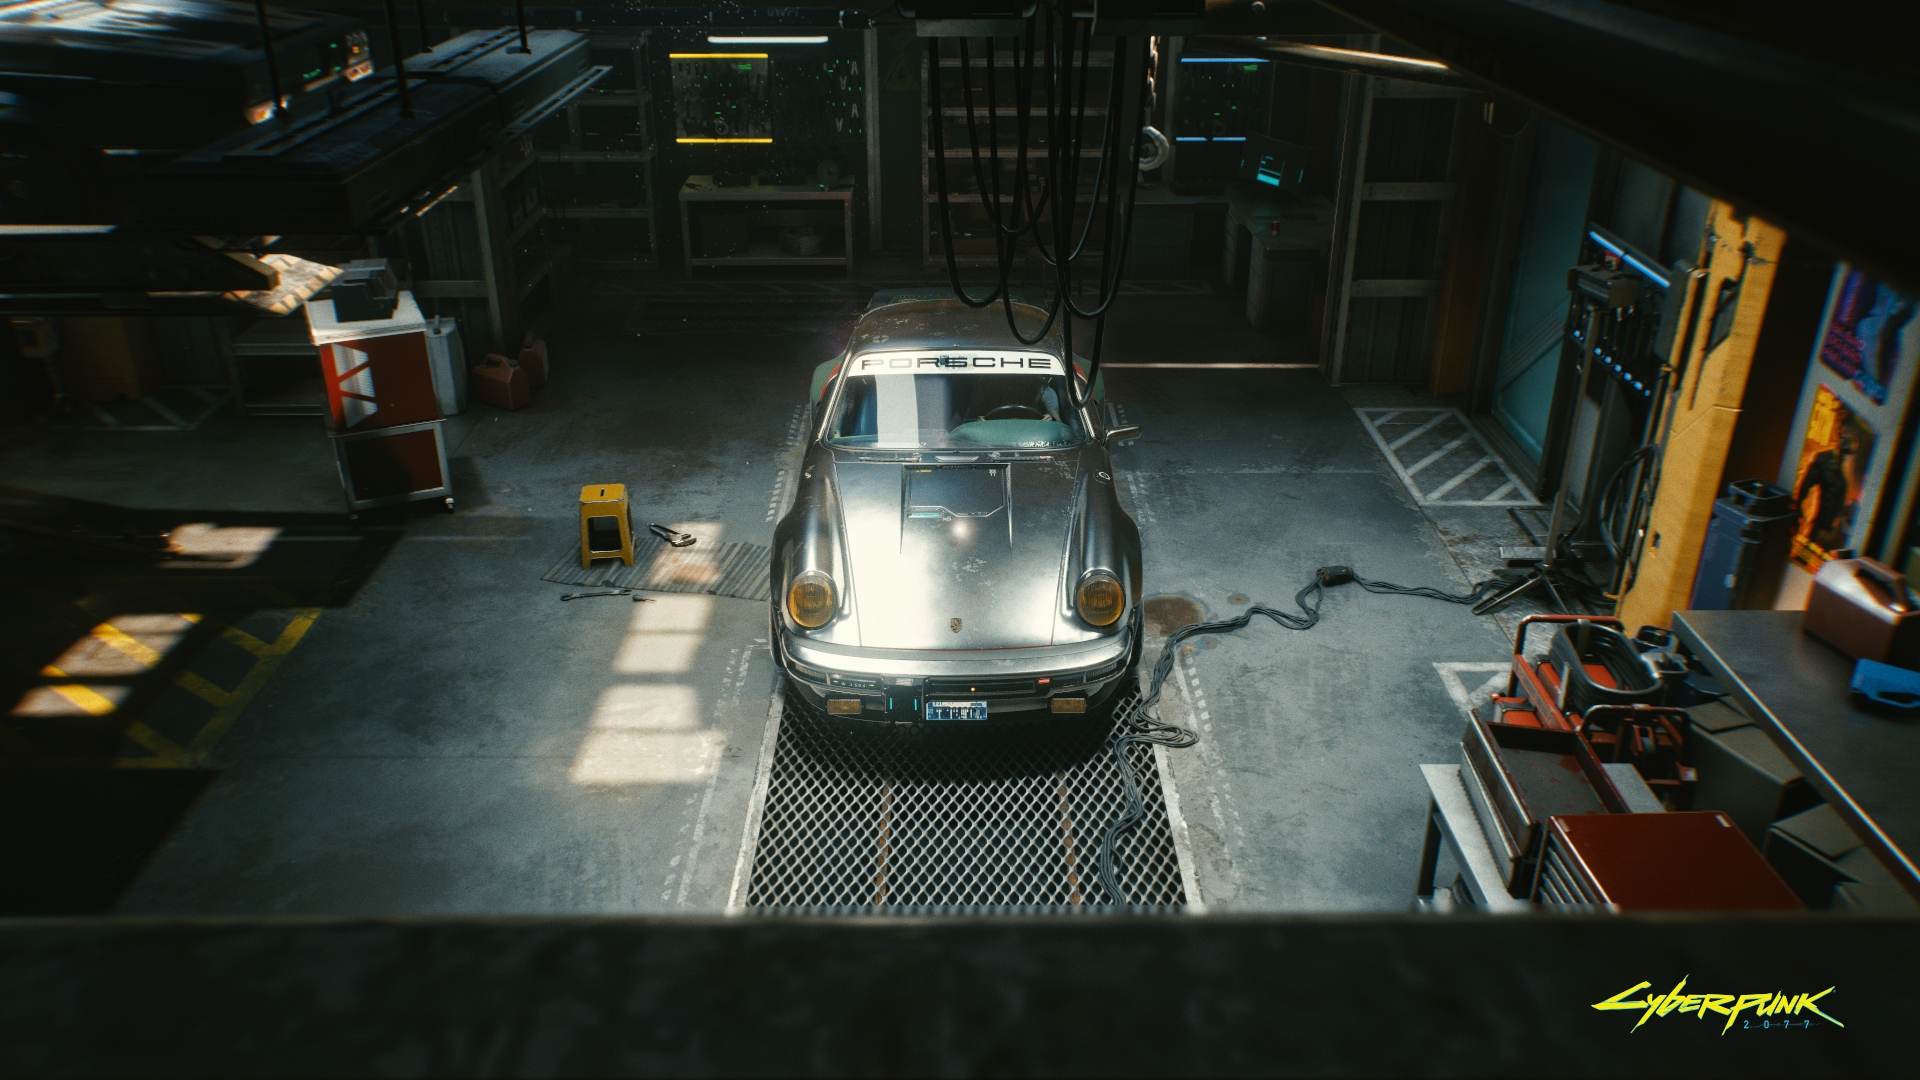 Johnny Silverhand's Porsche 911 Turbo - Cyberpunk 2077